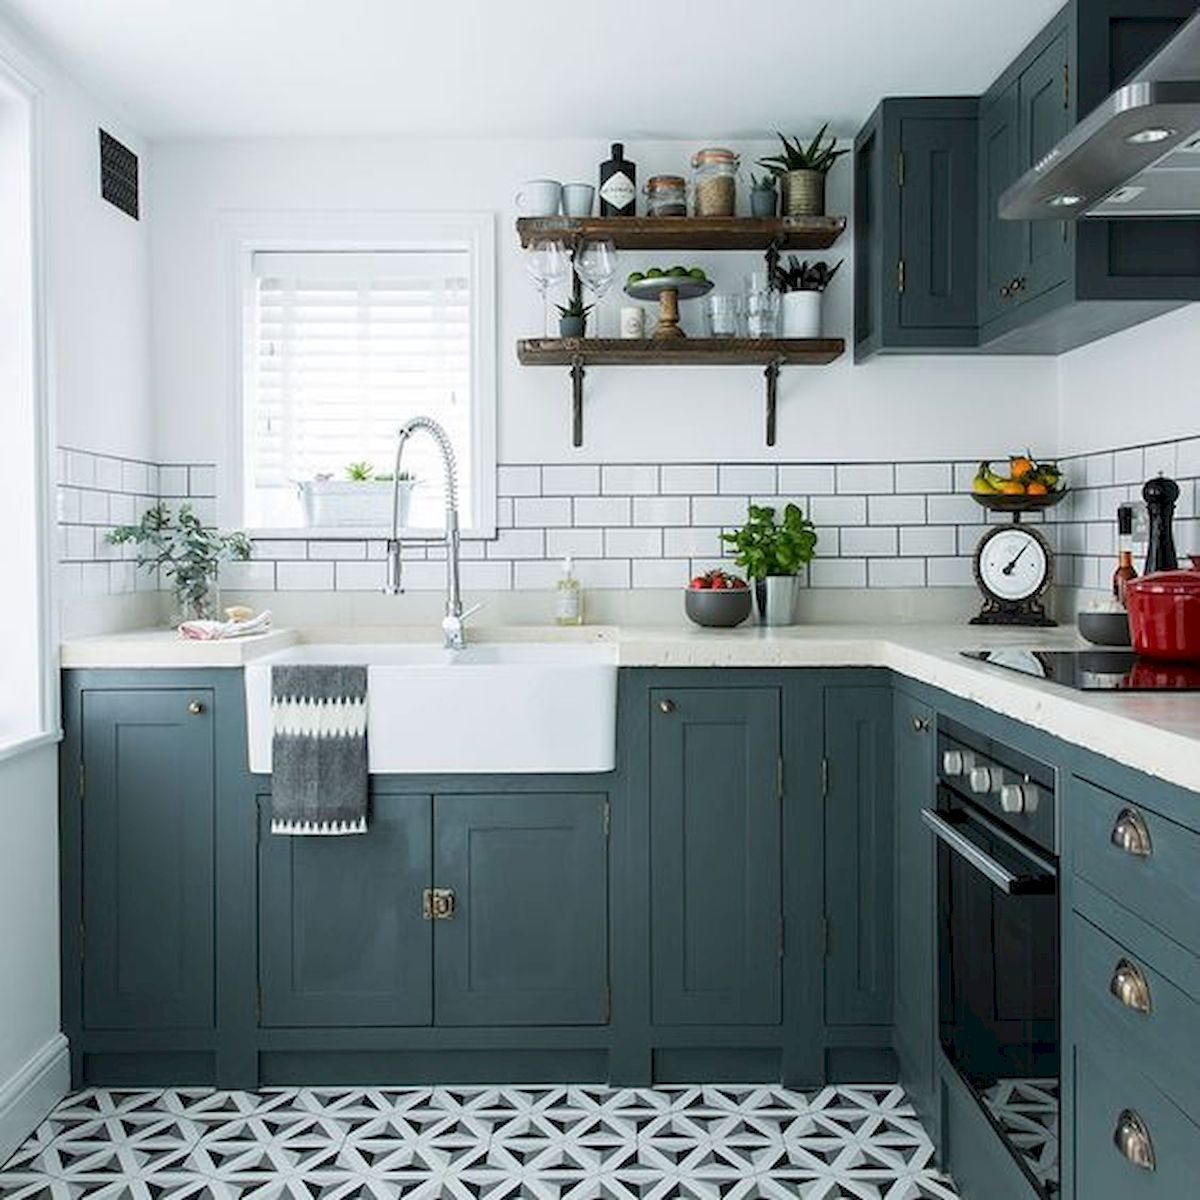 Kitchen Cabinet Design Ideas For Small Spaces: 90 Beautiful Small Kitchen Design Ideas (44)